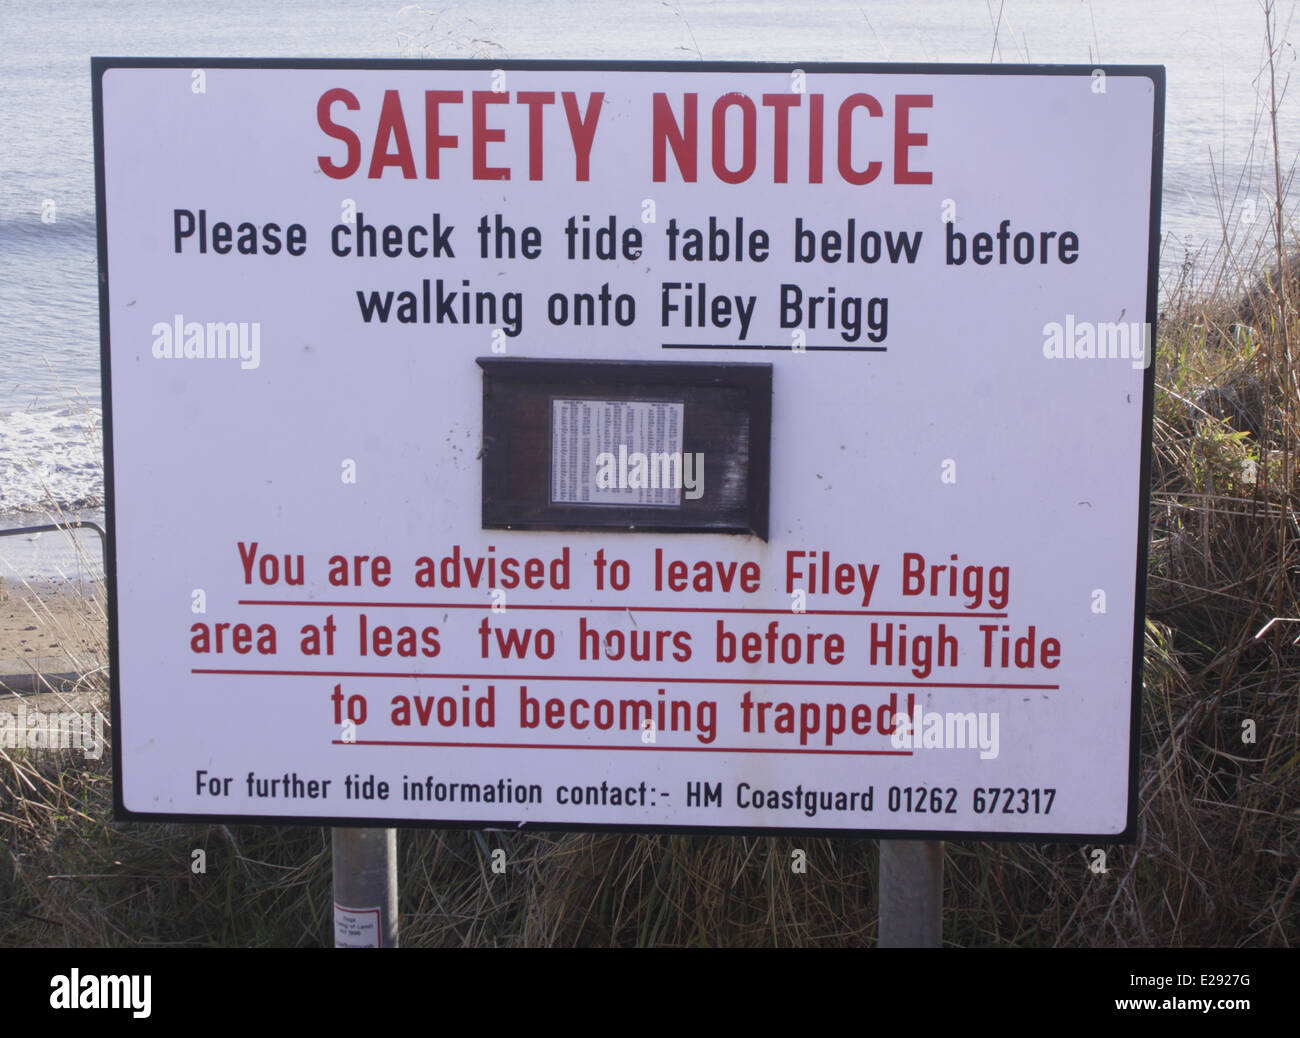 Tide table stock photos tide table stock images alamy safety notice please check the tide table below before walking onto filey brigg nvjuhfo Choice Image